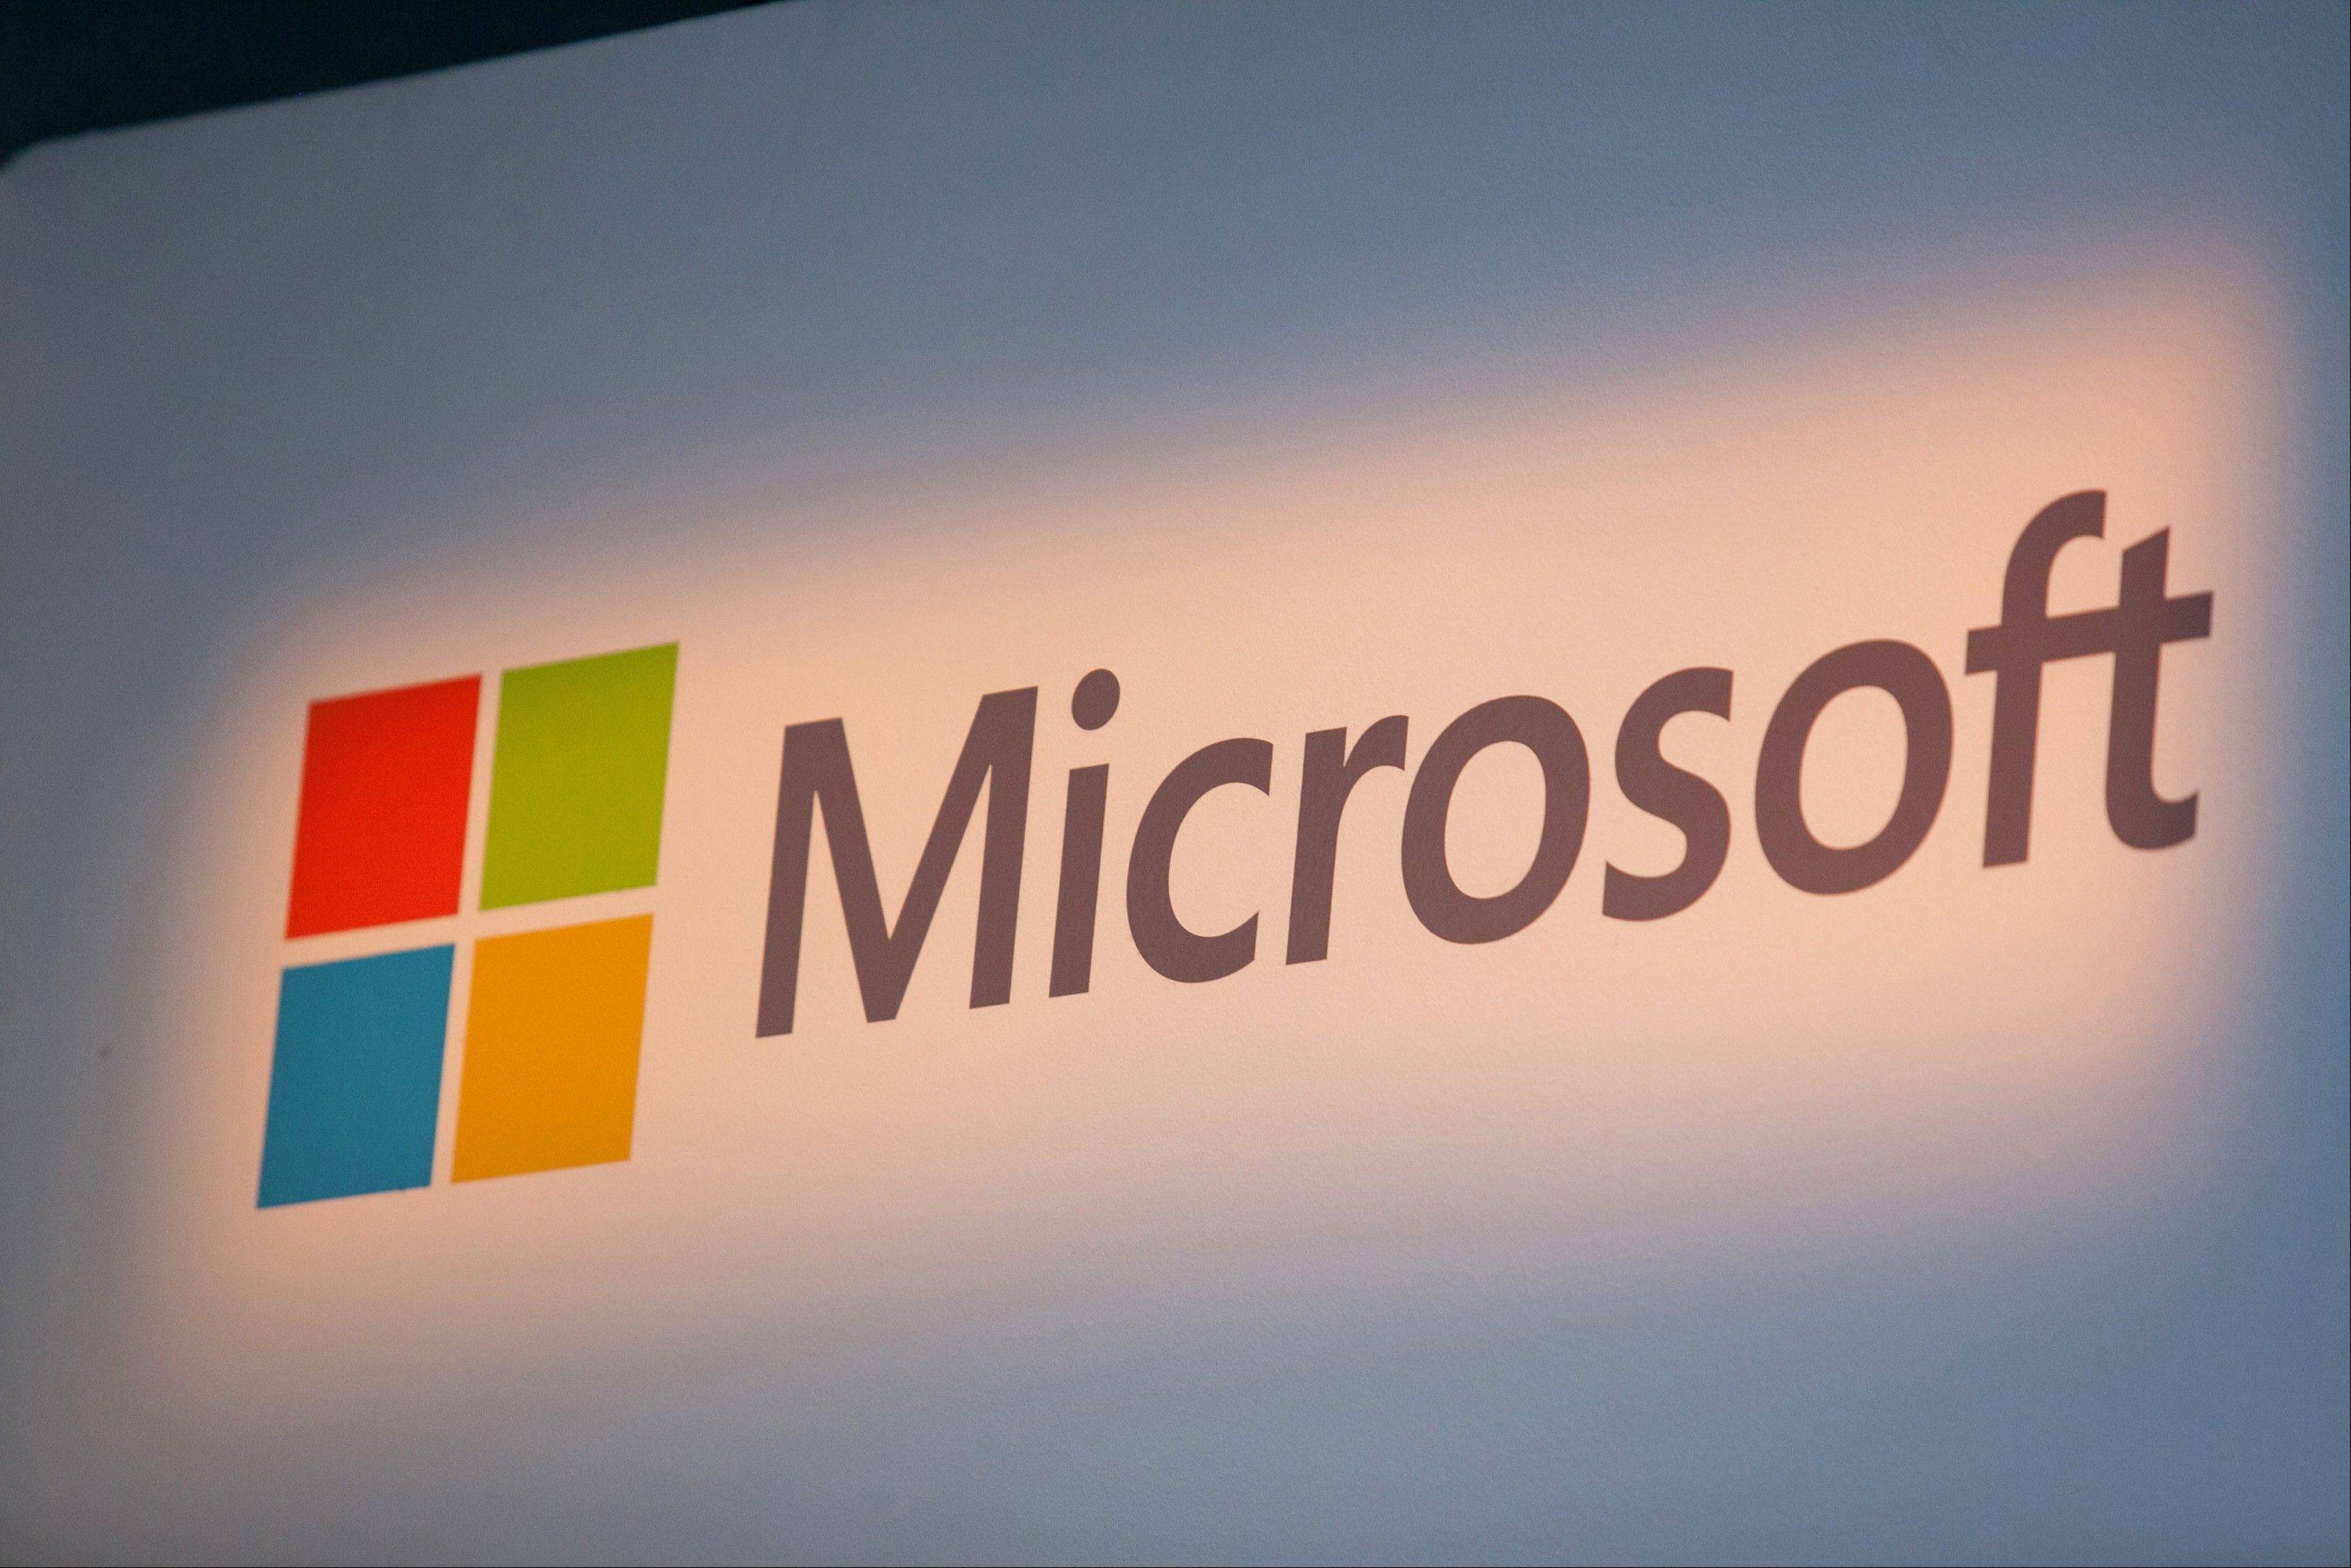 A Windows operating system logo sits on display inside Microsoft Corp.'s new store in Berlin, Germany.